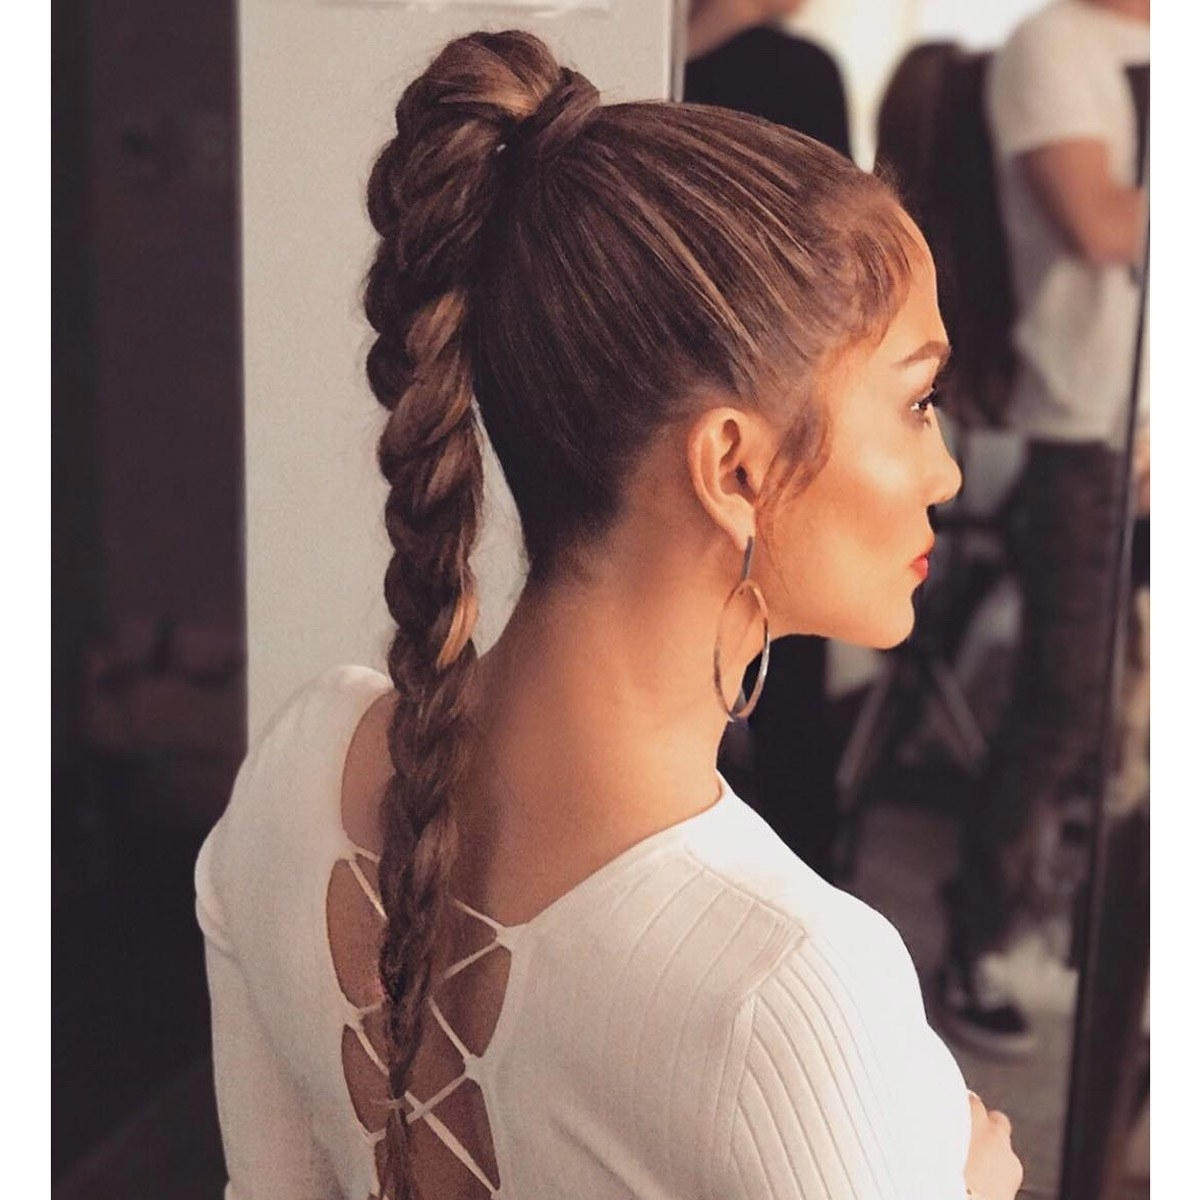 27 Ponytail Hairstyles For 2018: Best Ponytail Styles (View 14 of 15)